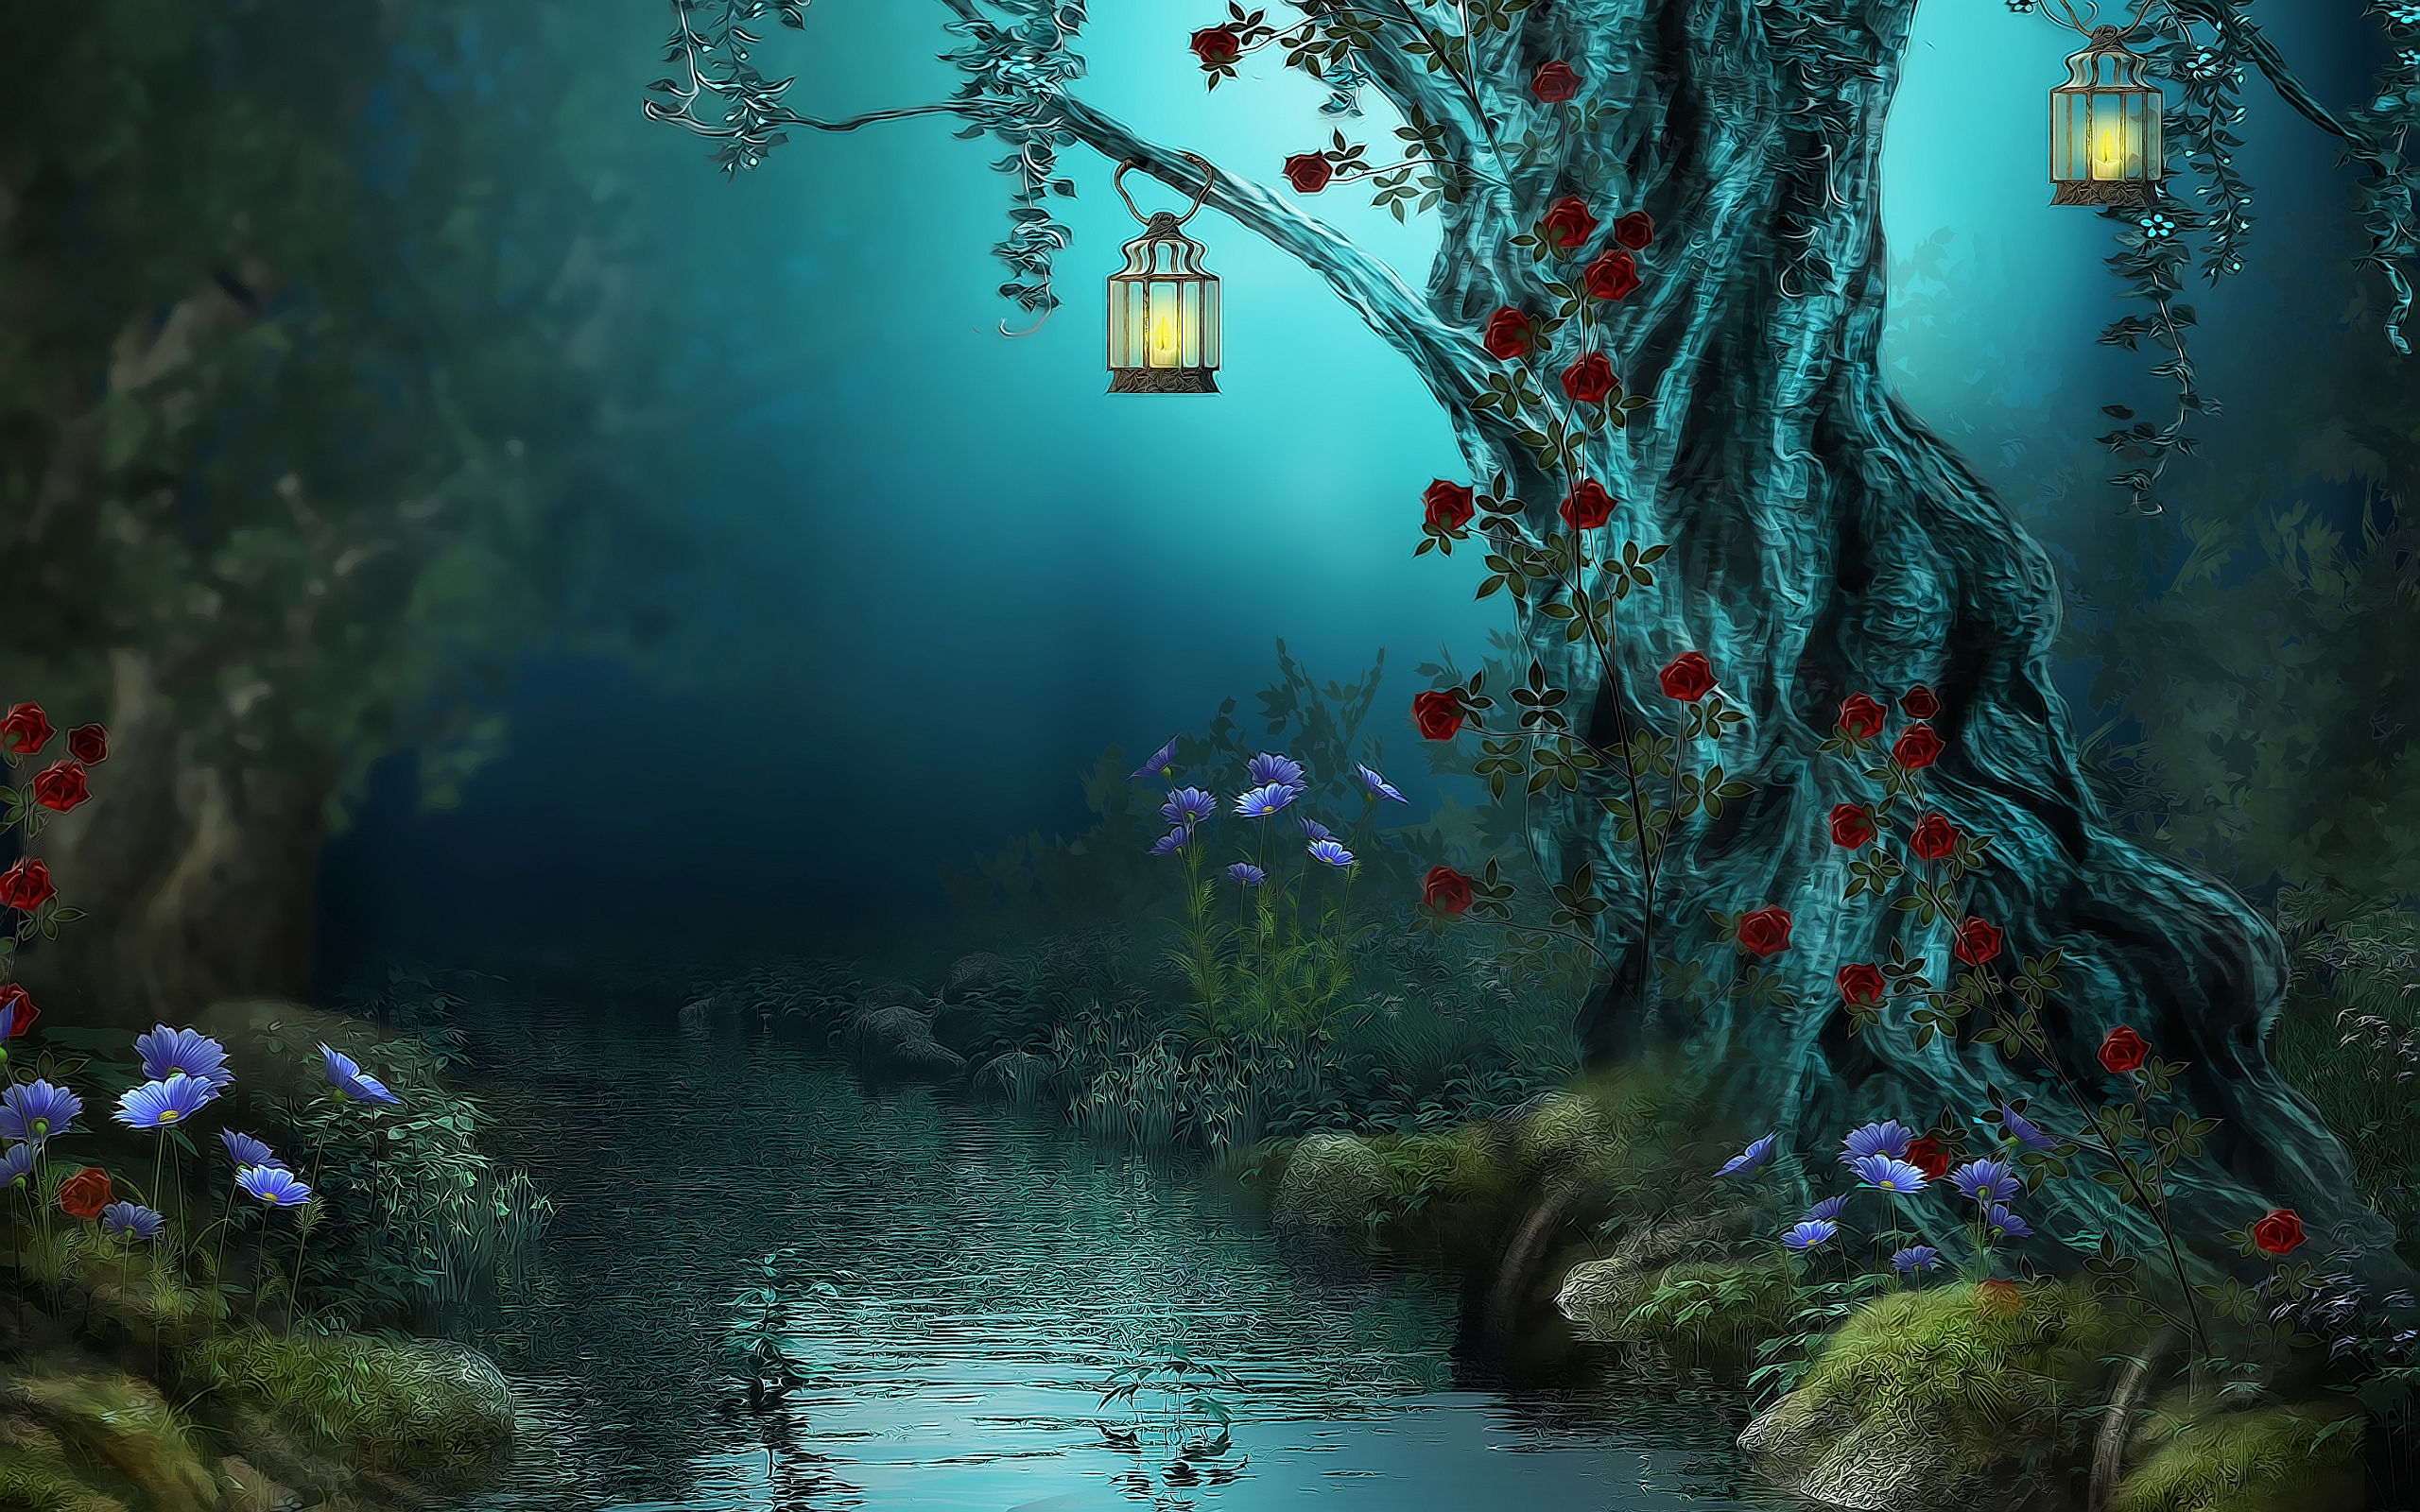 Fantasy - Artistic  - Forest - Magic - River Wallpaper